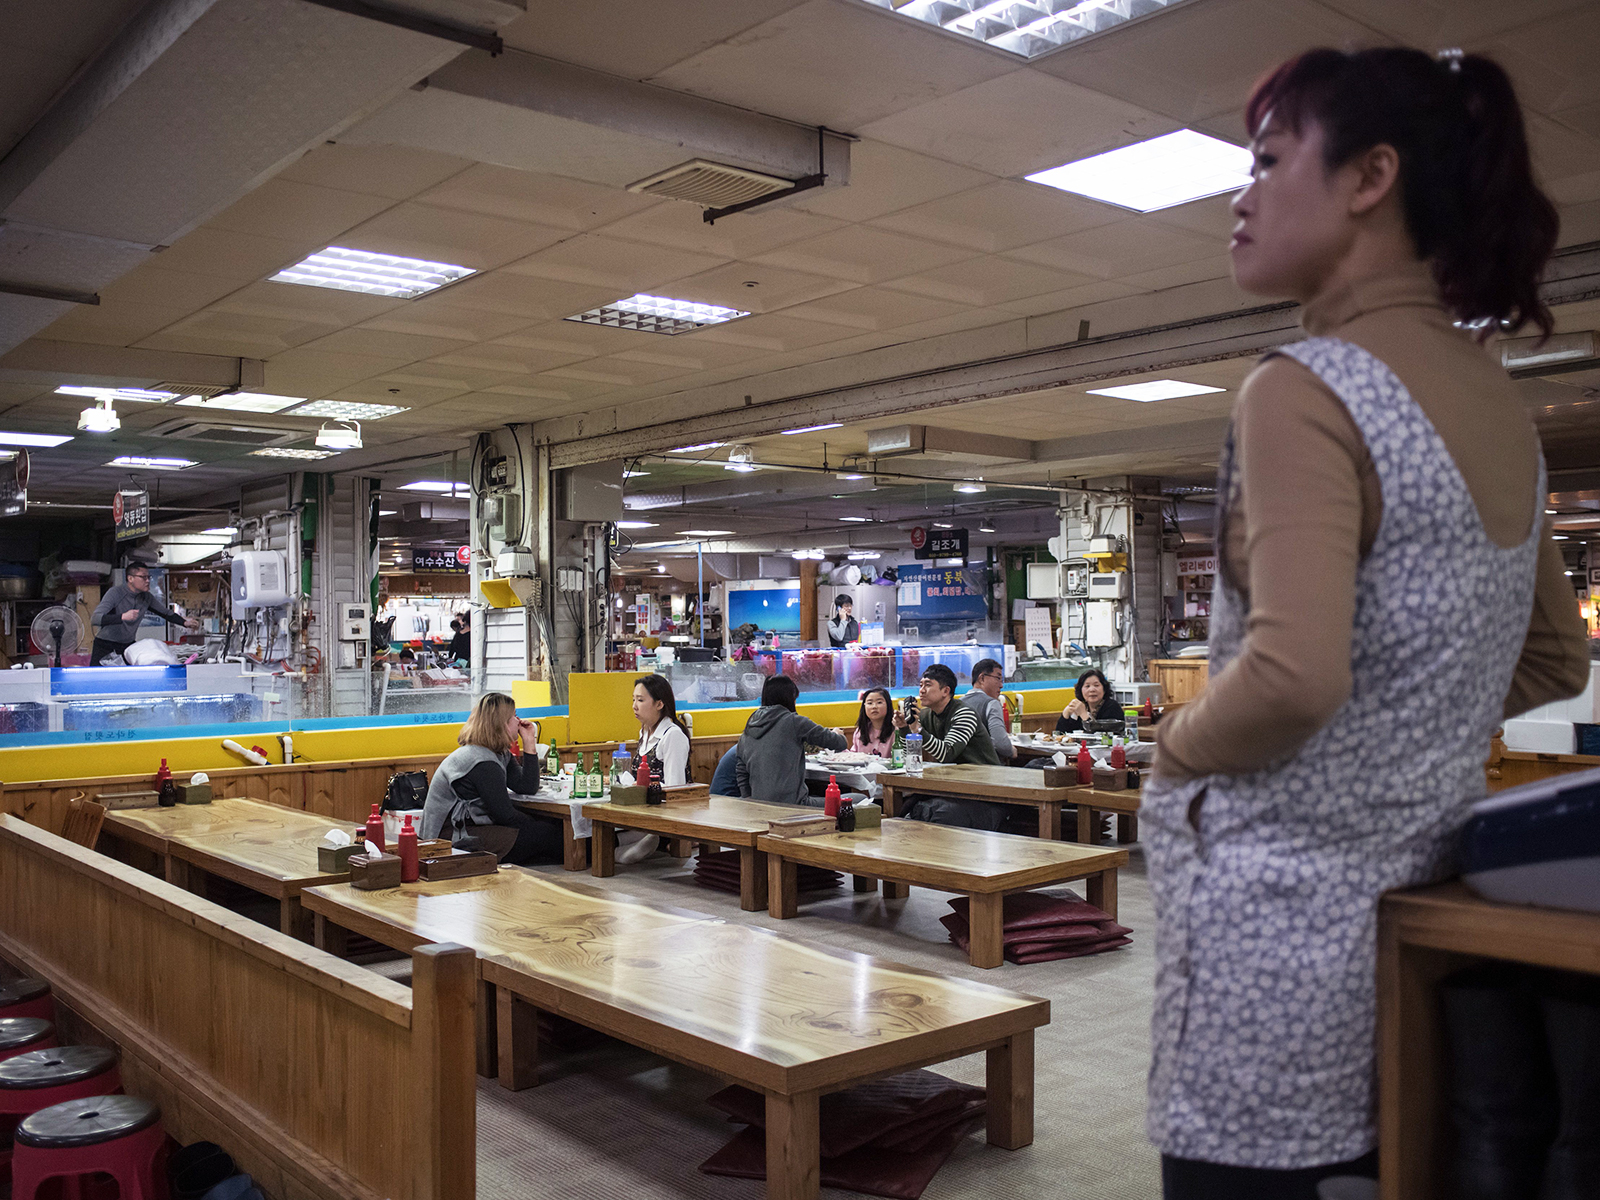 Thanks to the Olympics, Fish Market Prices Are Rising in Pyeongchang